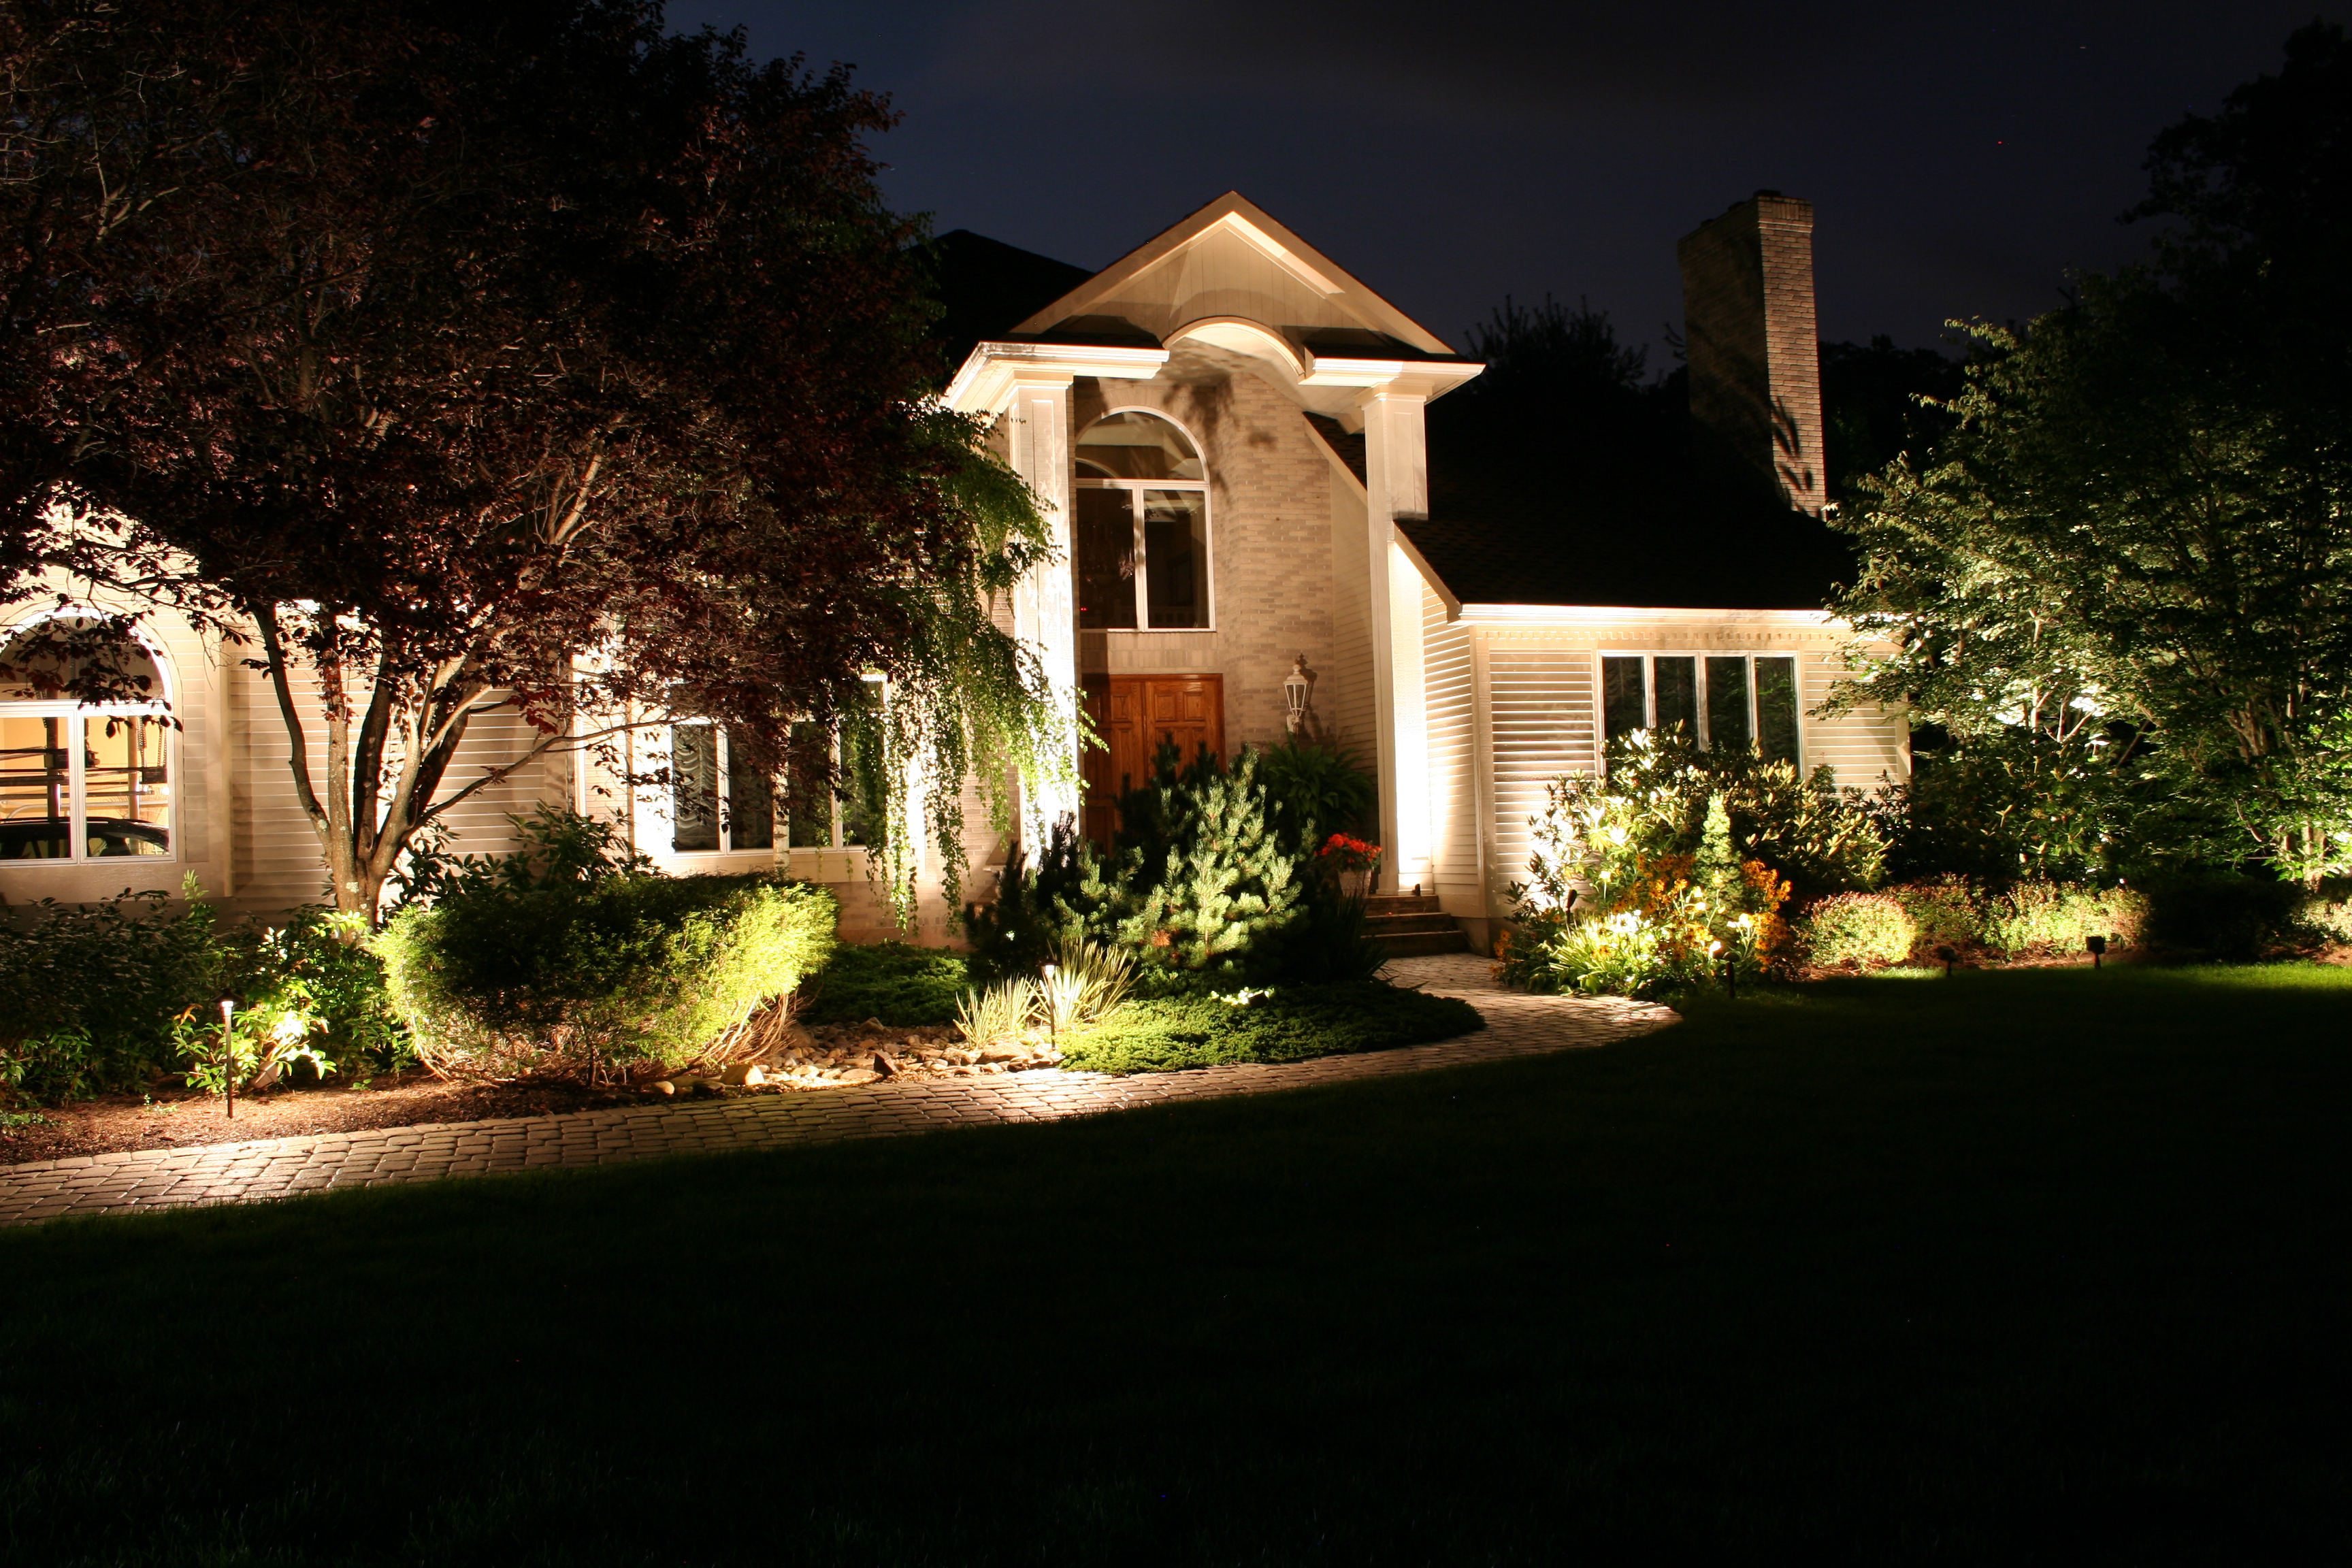 Preferred properties landscape lighting designer shows us How to design outdoor lighting plan